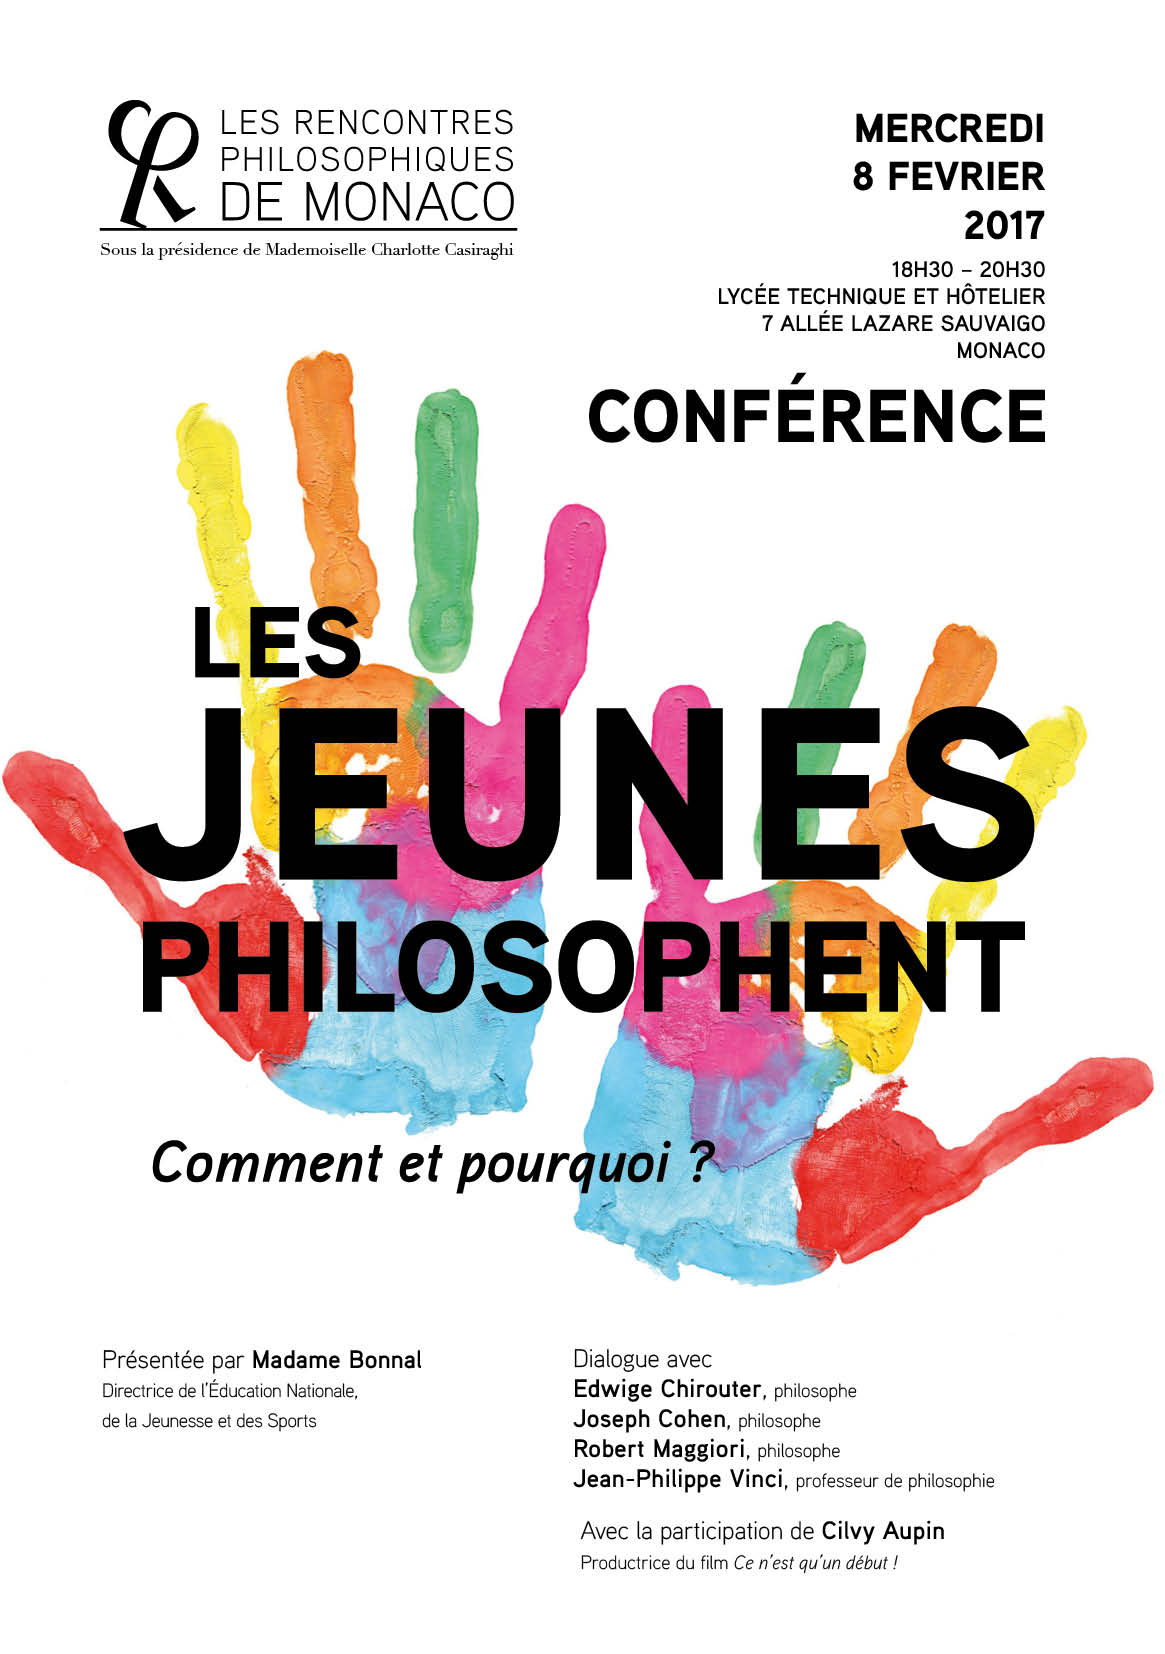 1214, 1214, 8 FEV Flyer recto Les jeunes philosophent, 8-FEV-Flyer-recto-Les-jeunes-philosophent.jpg, 177225, http://philomonaco.com/wp-content/uploads/2017/02/8-FEV-Flyer-recto-Les-jeunes-philosophent.jpg, http://philomonaco.com/atelier/les-jeunes-philosophent/8-fev-flyer-recto-les-jeunes-philosophent/, , 2, , , 8-fev-flyer-recto-les-jeunes-philosophent, inherit, 1212, 2017-02-20 17:35:37, 2017-02-20 17:35:55, 0, image/jpeg, image, jpeg, http://philomonaco.com/wp-includes/images/media/default.png, 1165, 1654, Array